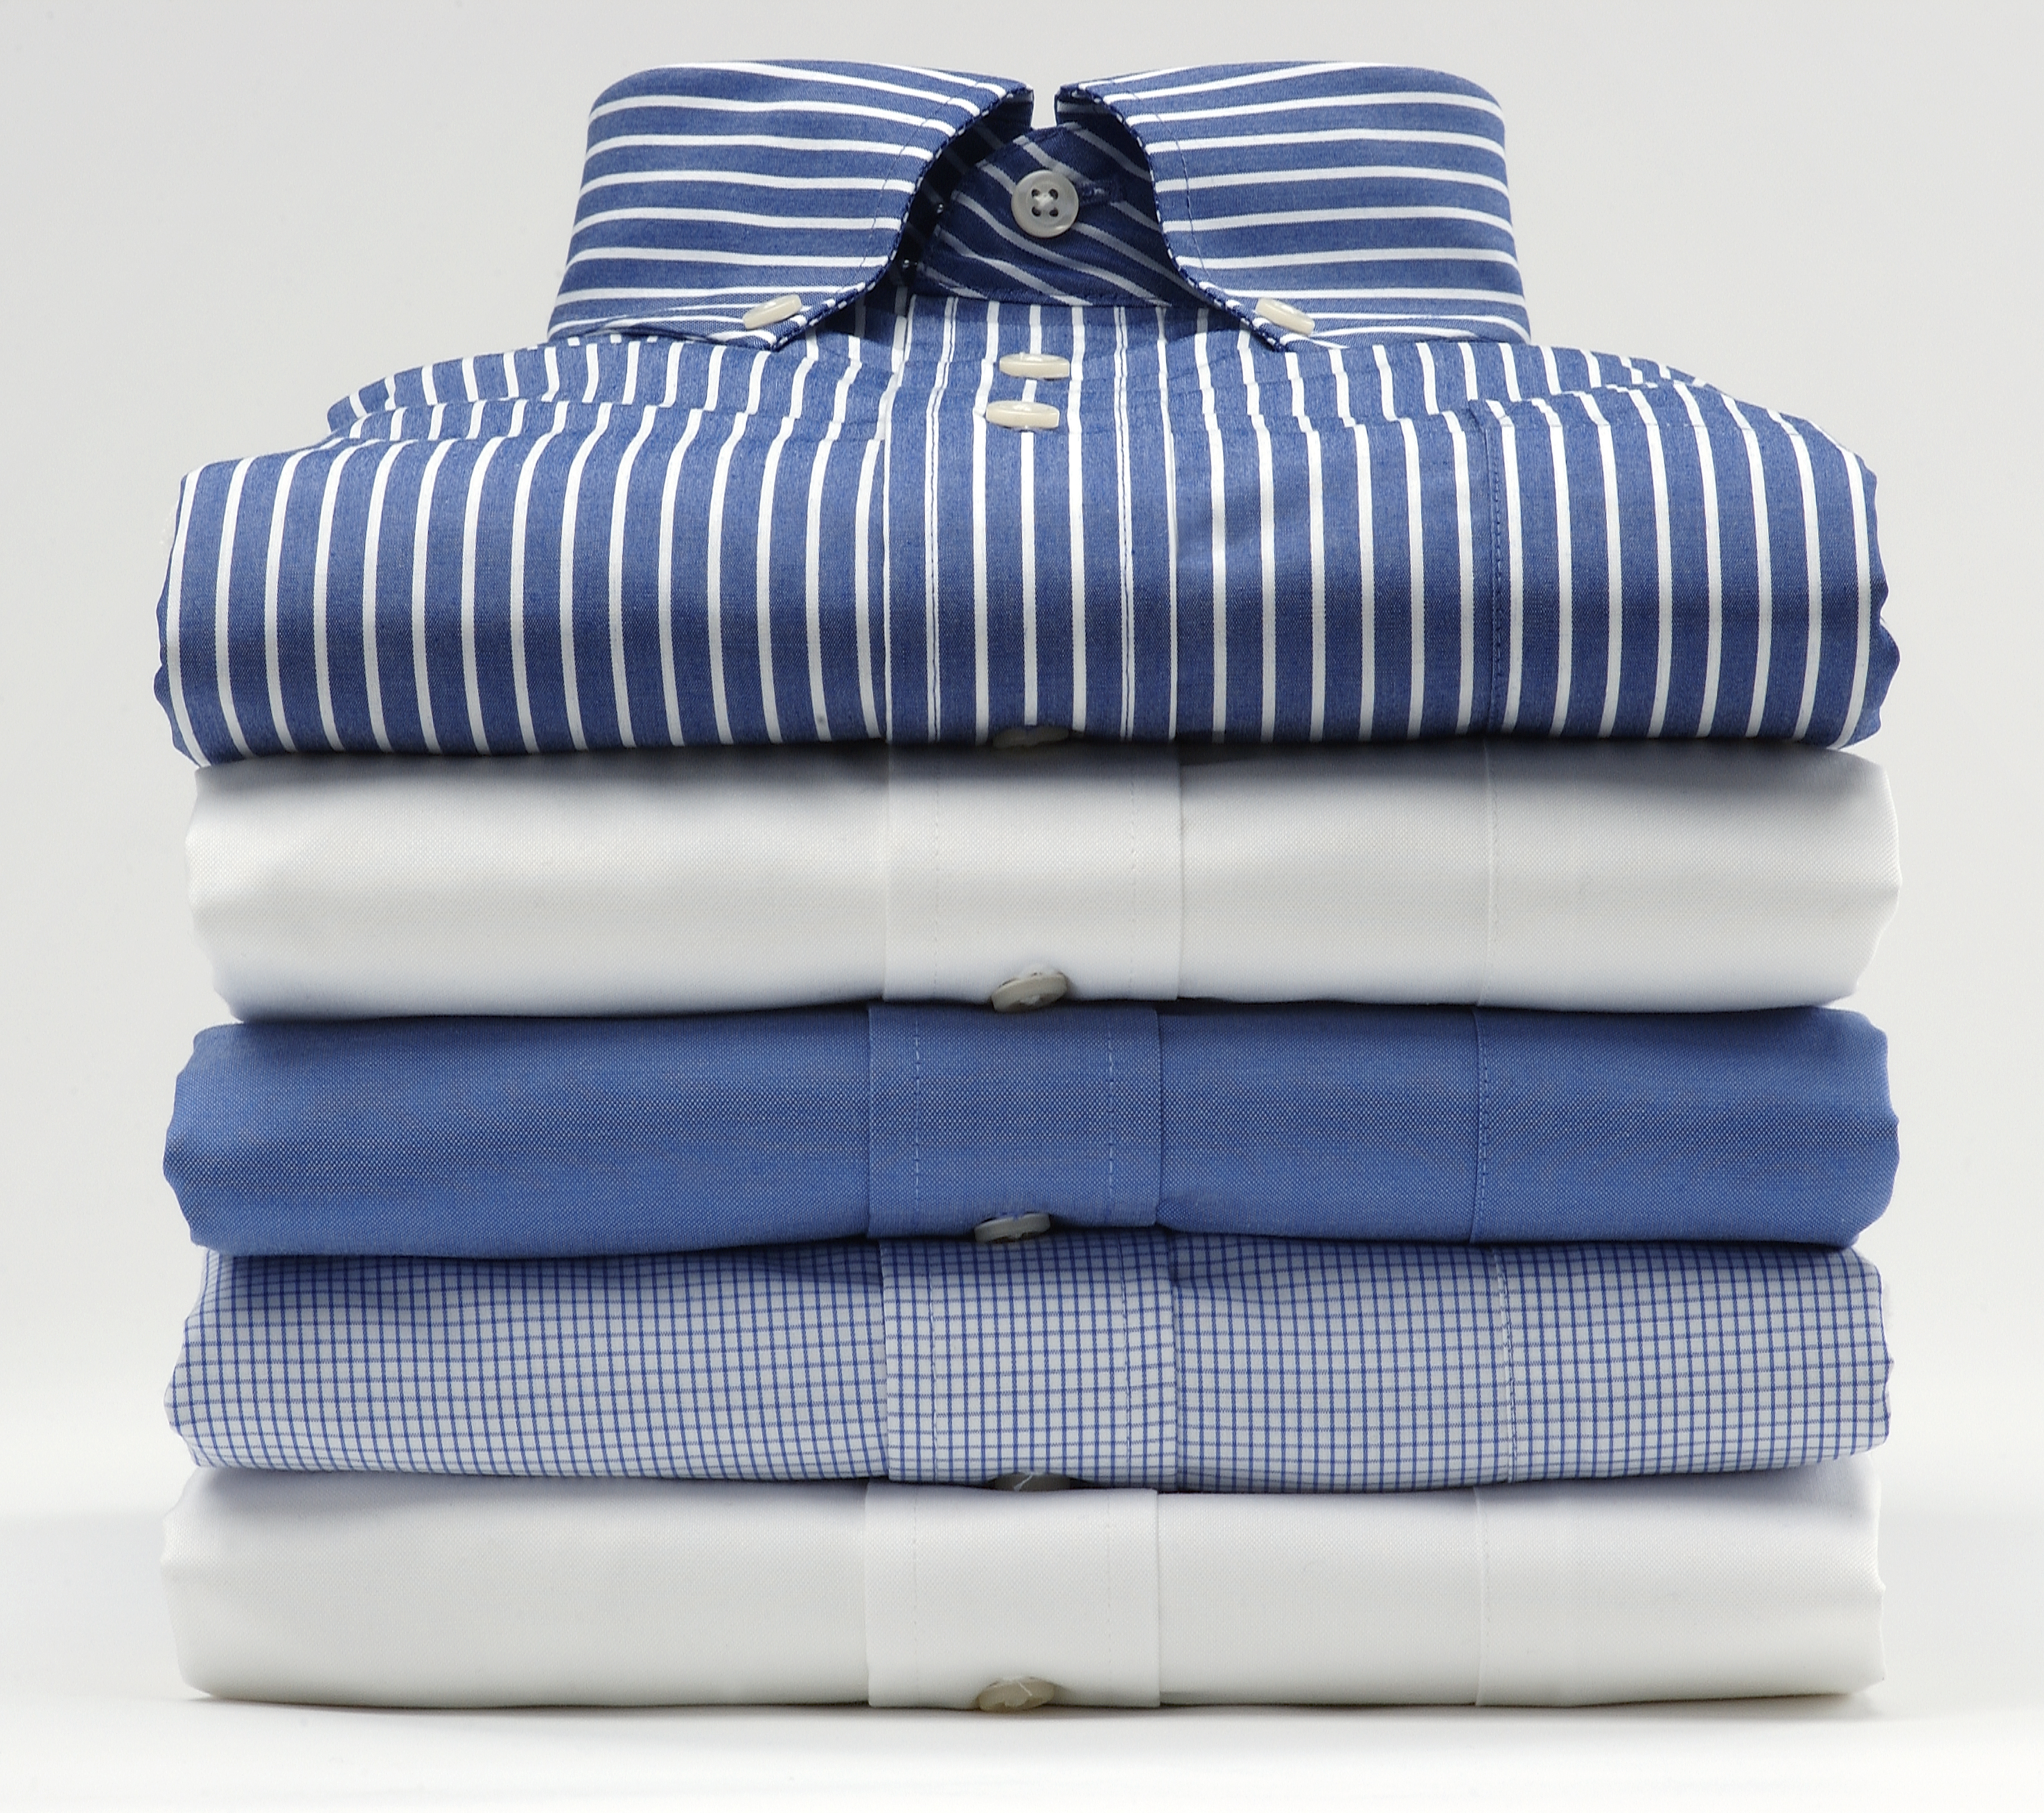 the finest professional shirt, laundry, and pressing service.